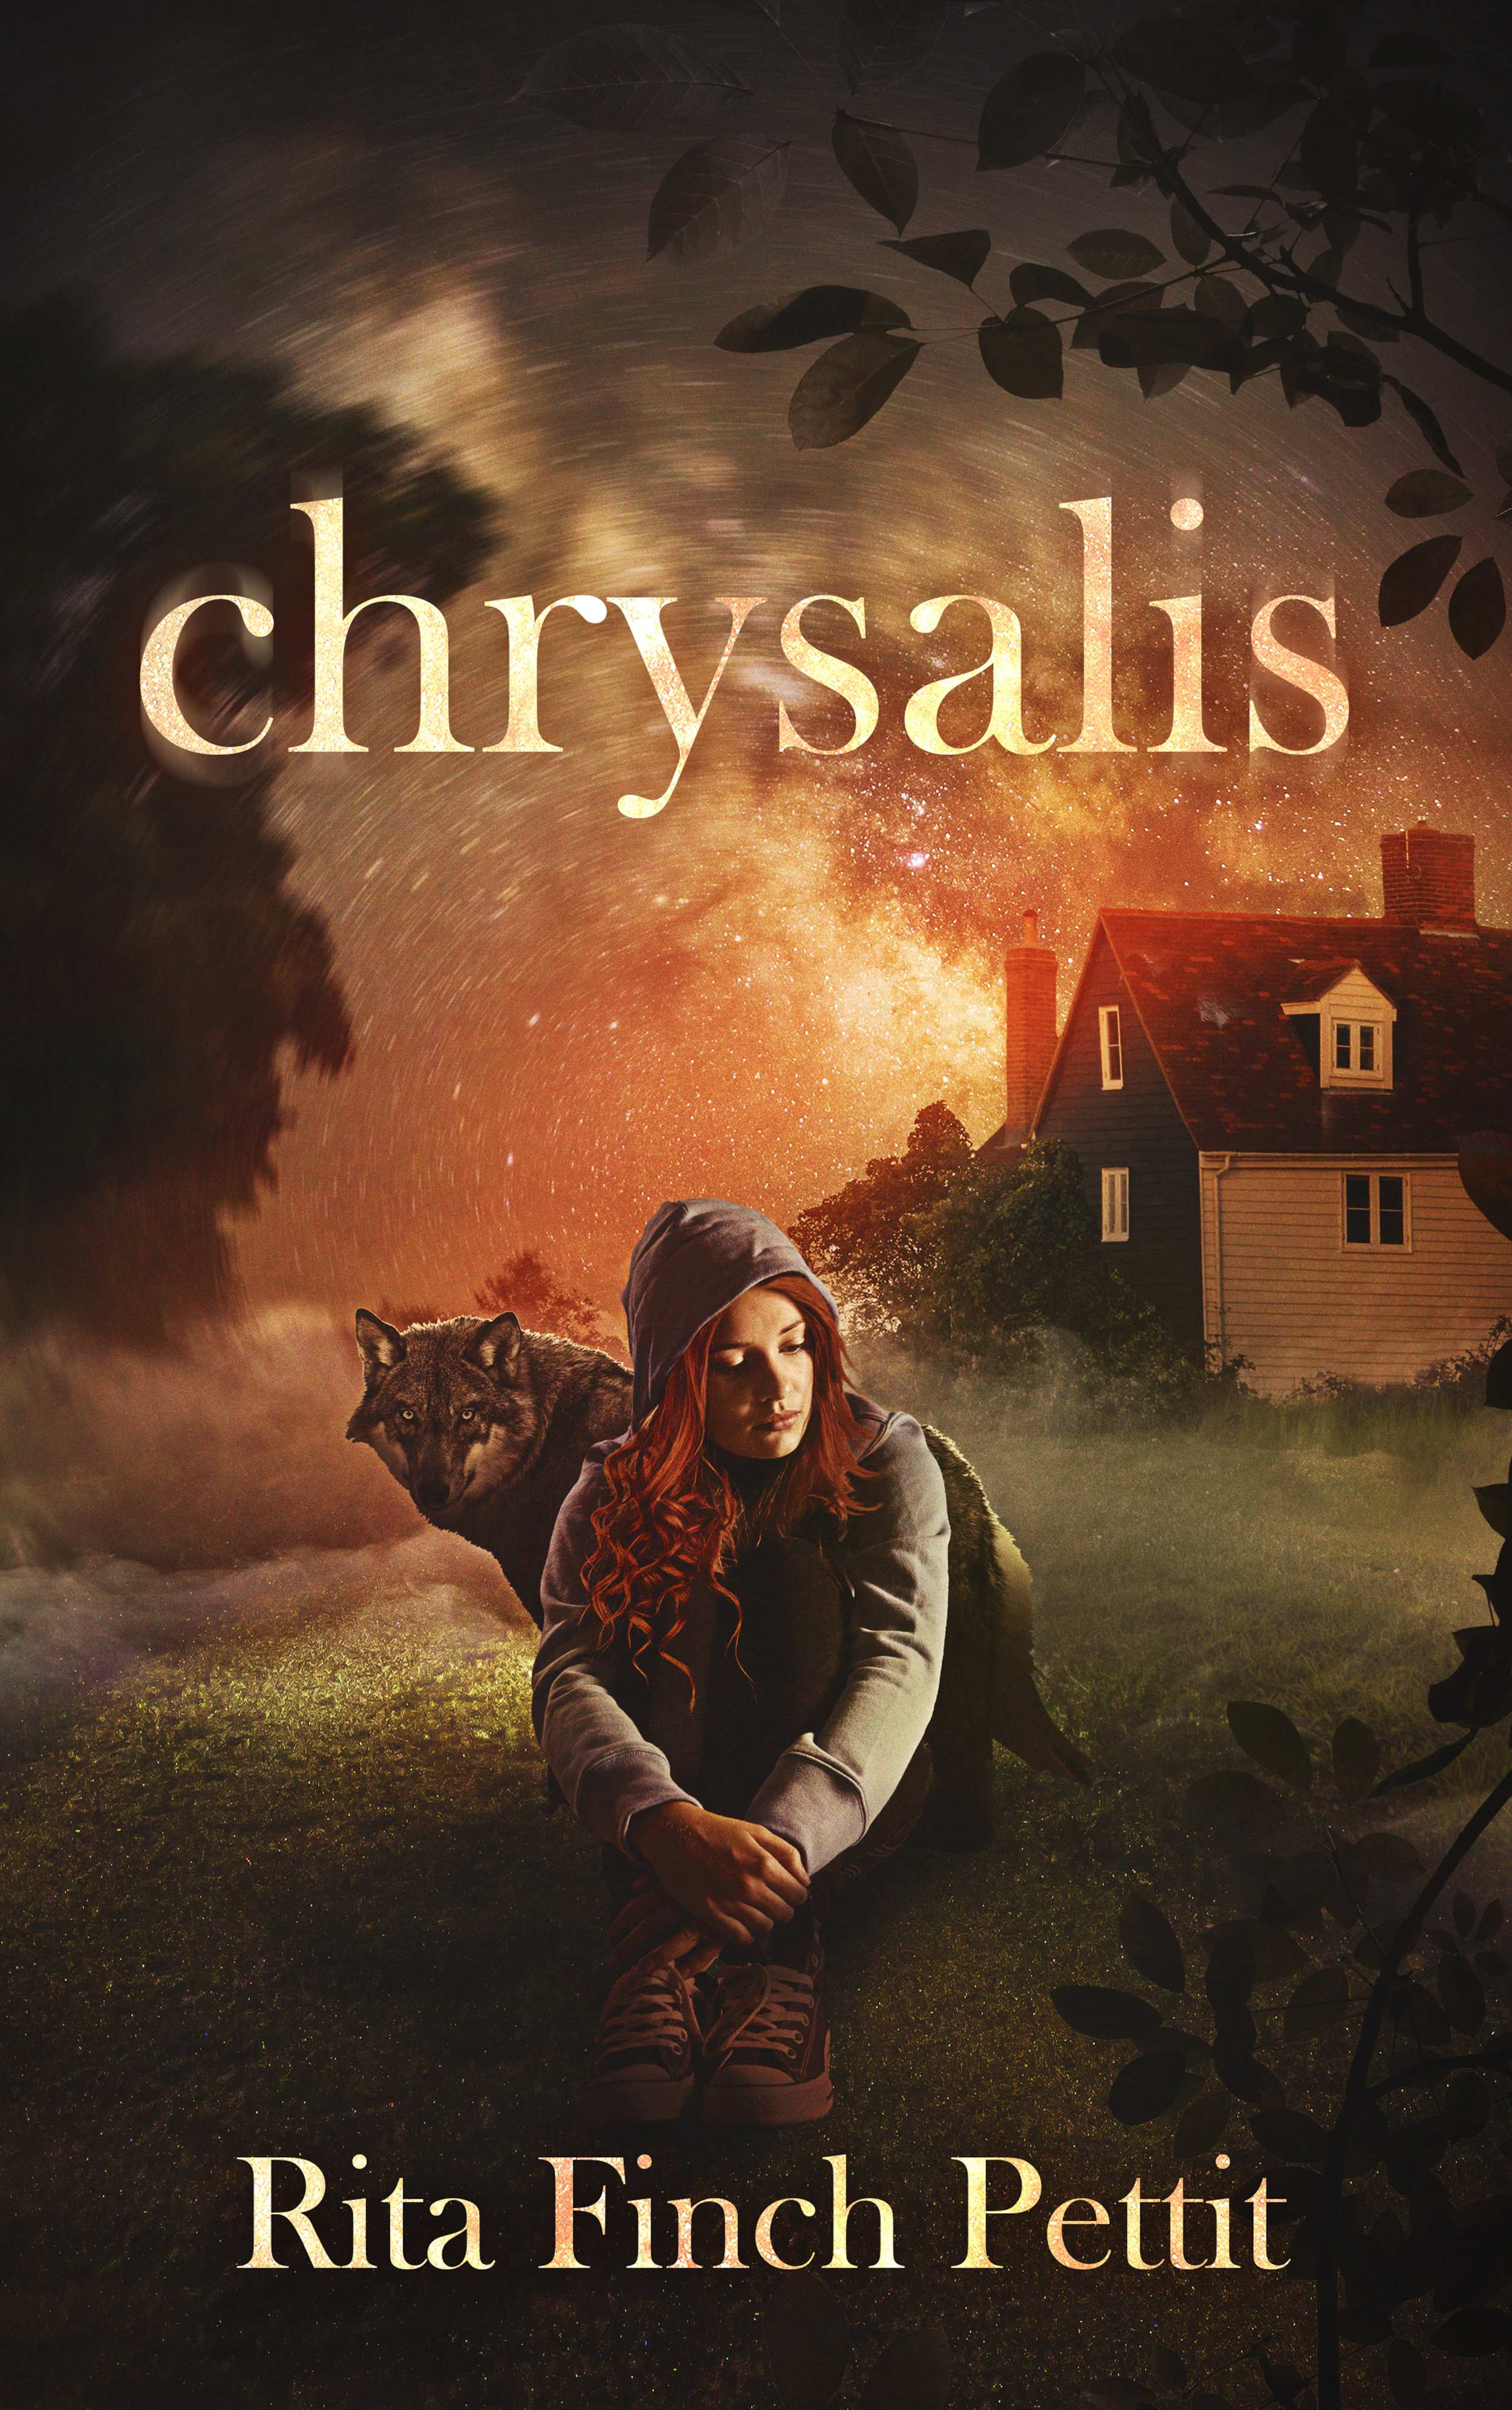 Chrysalis is a young adult novel about the struggle to find light in the midst of darkness.